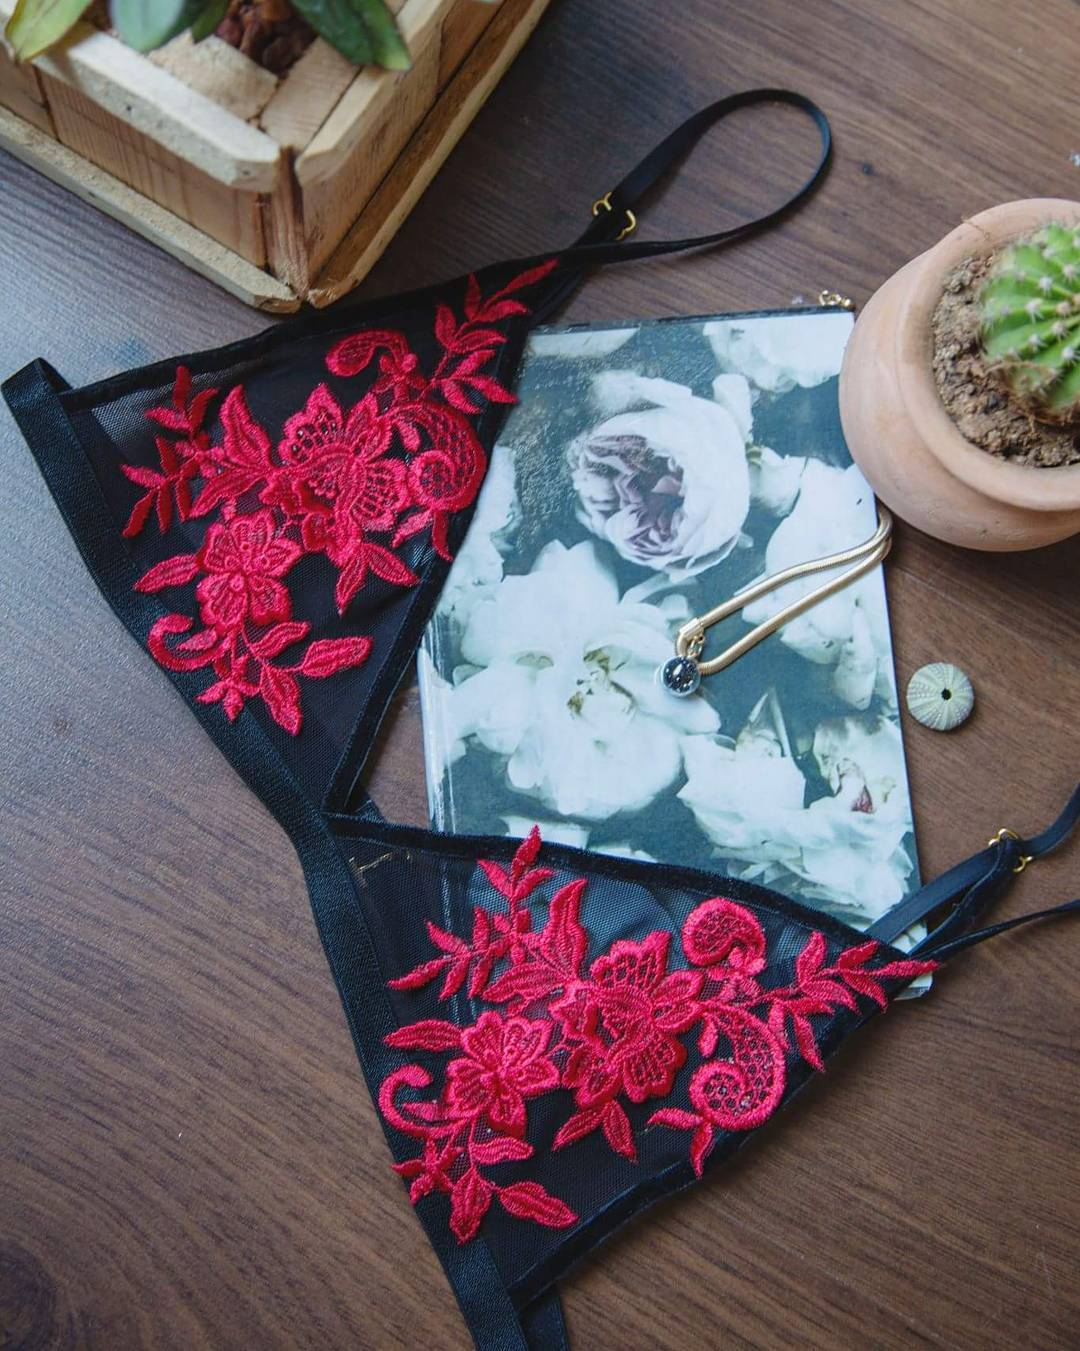 """""""A girl and her bed on Sundays are an endless love affair"""". Spend your Sunday in one of our gorgeous Kaleidoscope Eyes bralettes. This red on black combo might just be our favourite😍💋 #bralette #bra #lingerie #mesh #red #sunday #kaleidoscopeeyes #sundayfeels #love #black #fashion #southafrica #madeinsouthafrica #handmade #bespoke #custommade -visit our Facebook page to see more 💋 xx 📷@bahamaburgundyblog"""